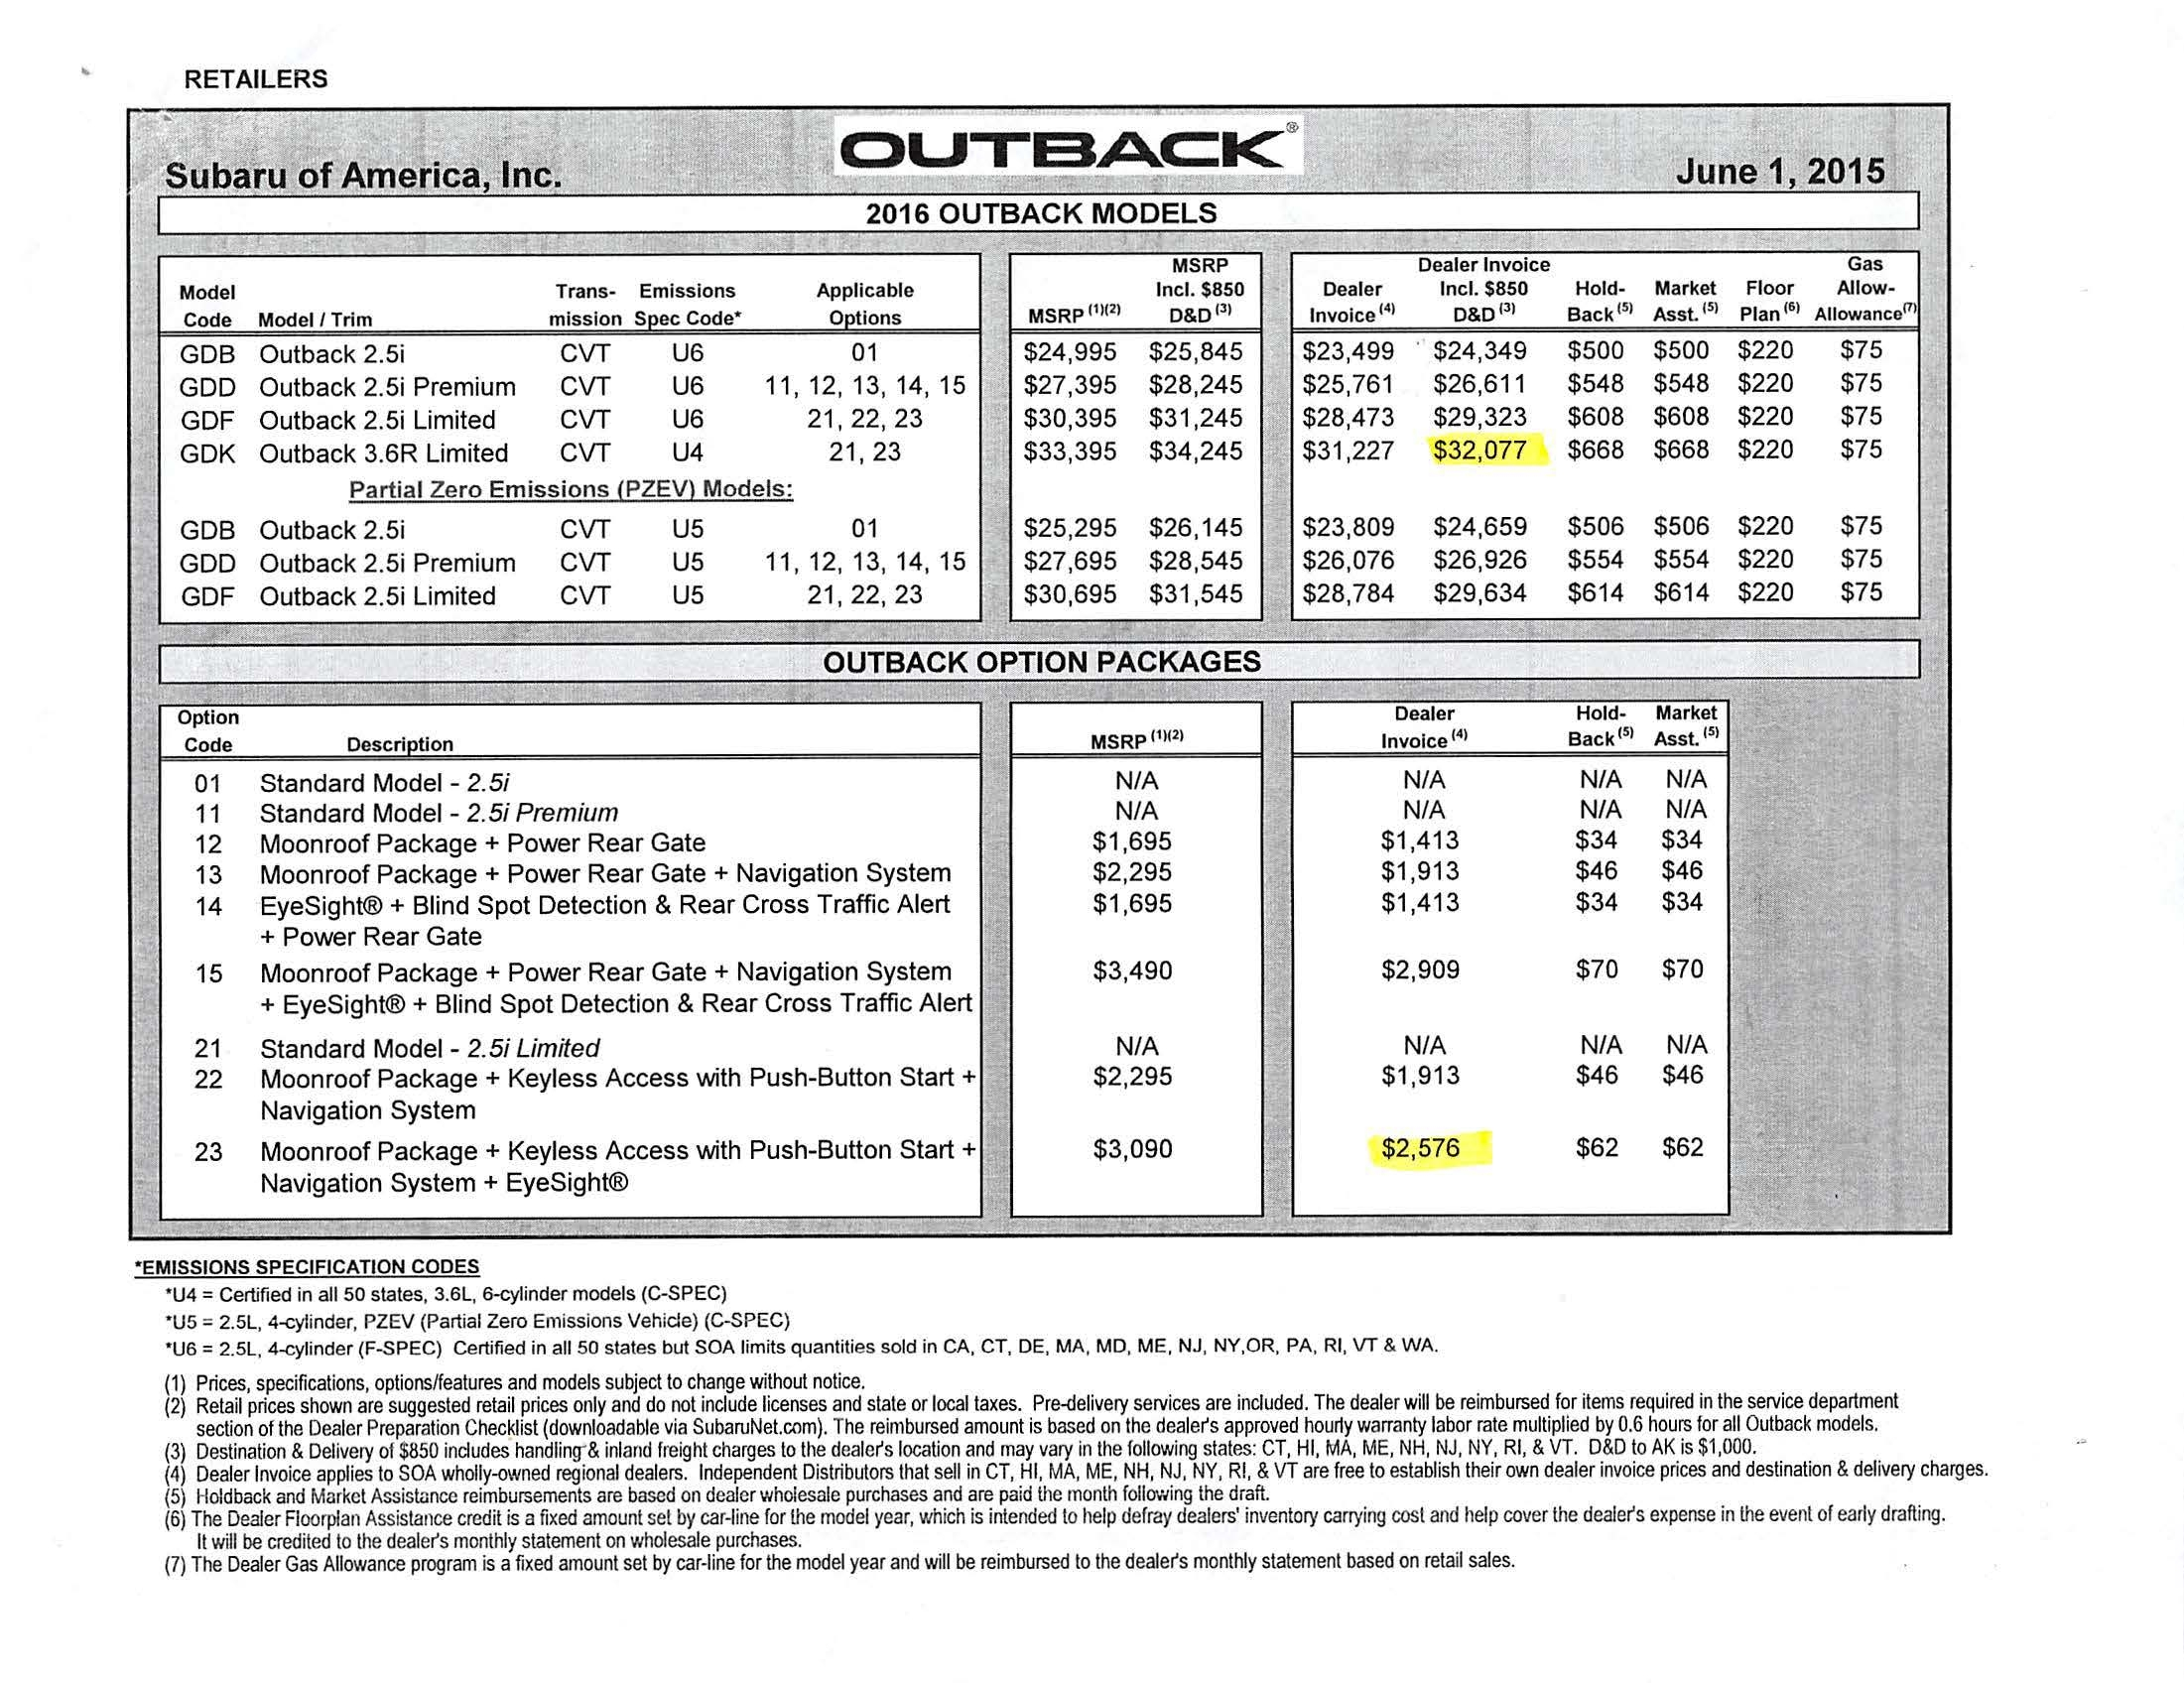 2017 Subaru Outback Dealer Invoice Best New Cars For 2018